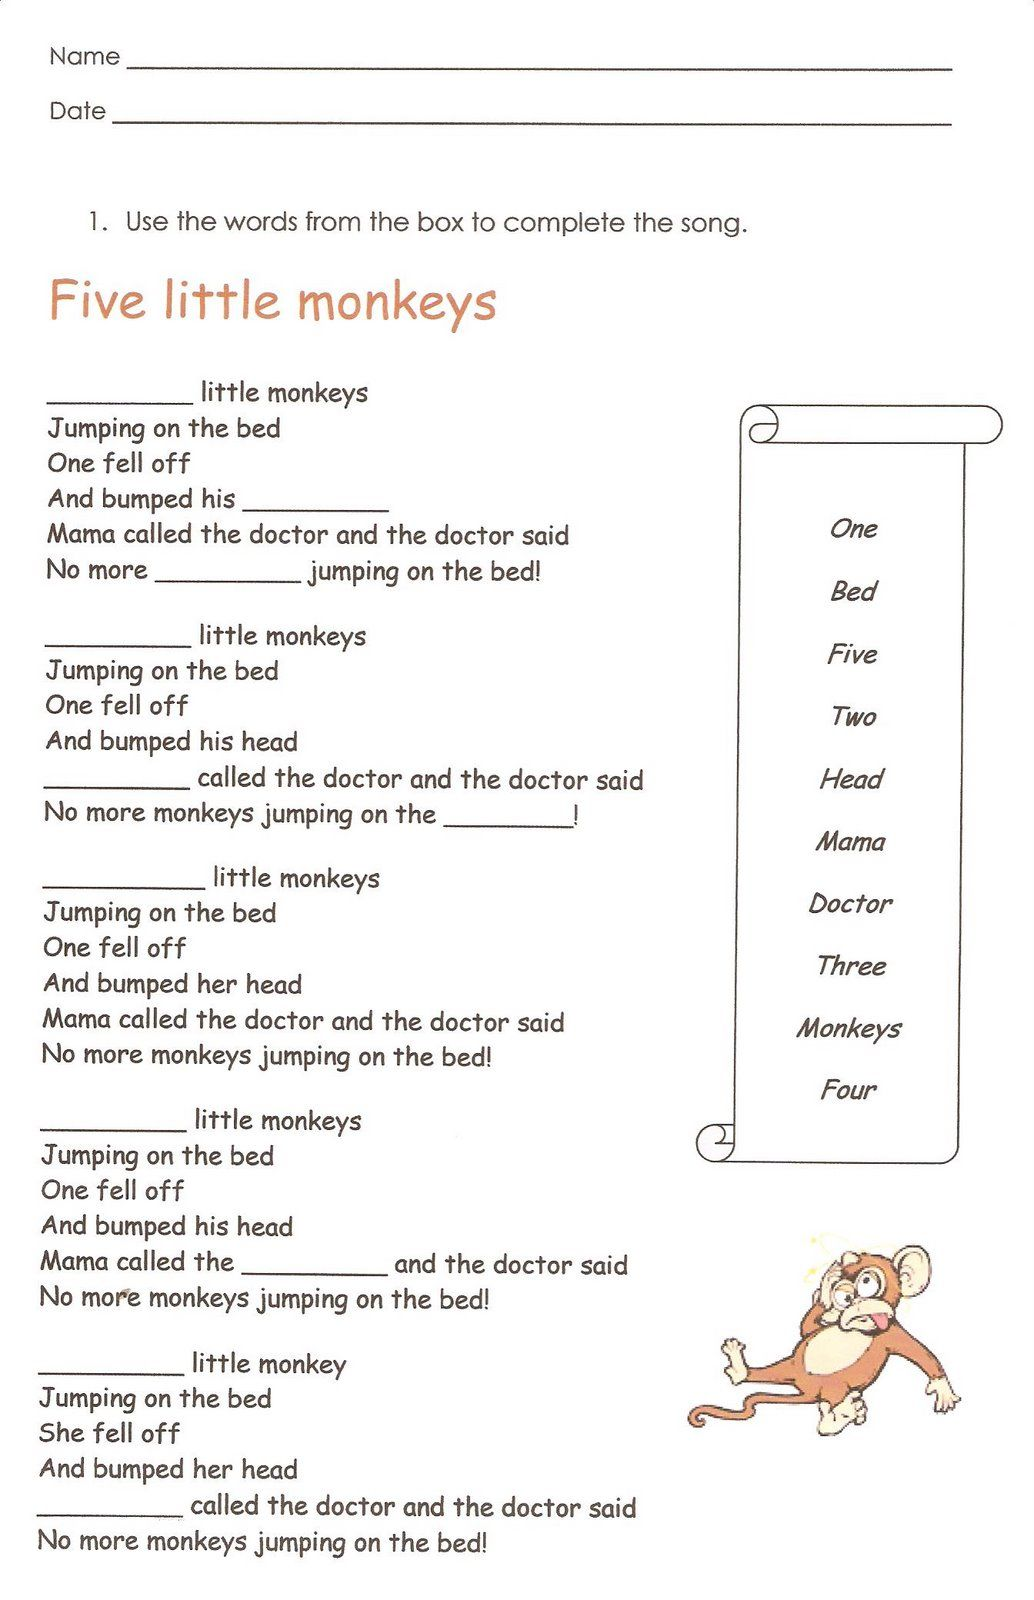 7 Math In English Worksheets For Grade 5